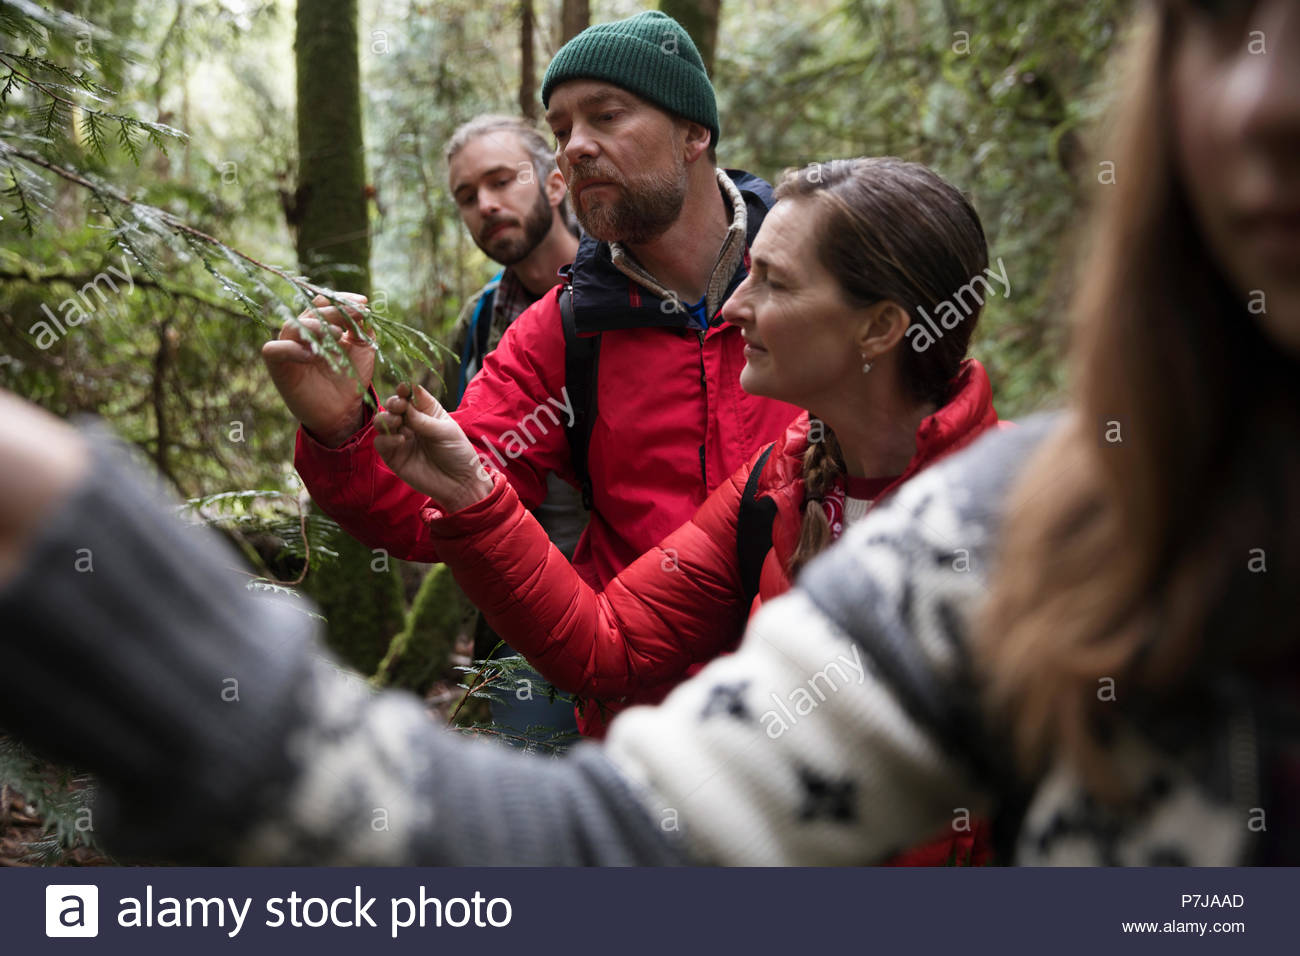 Curious couple hiking in woods - Stock Image